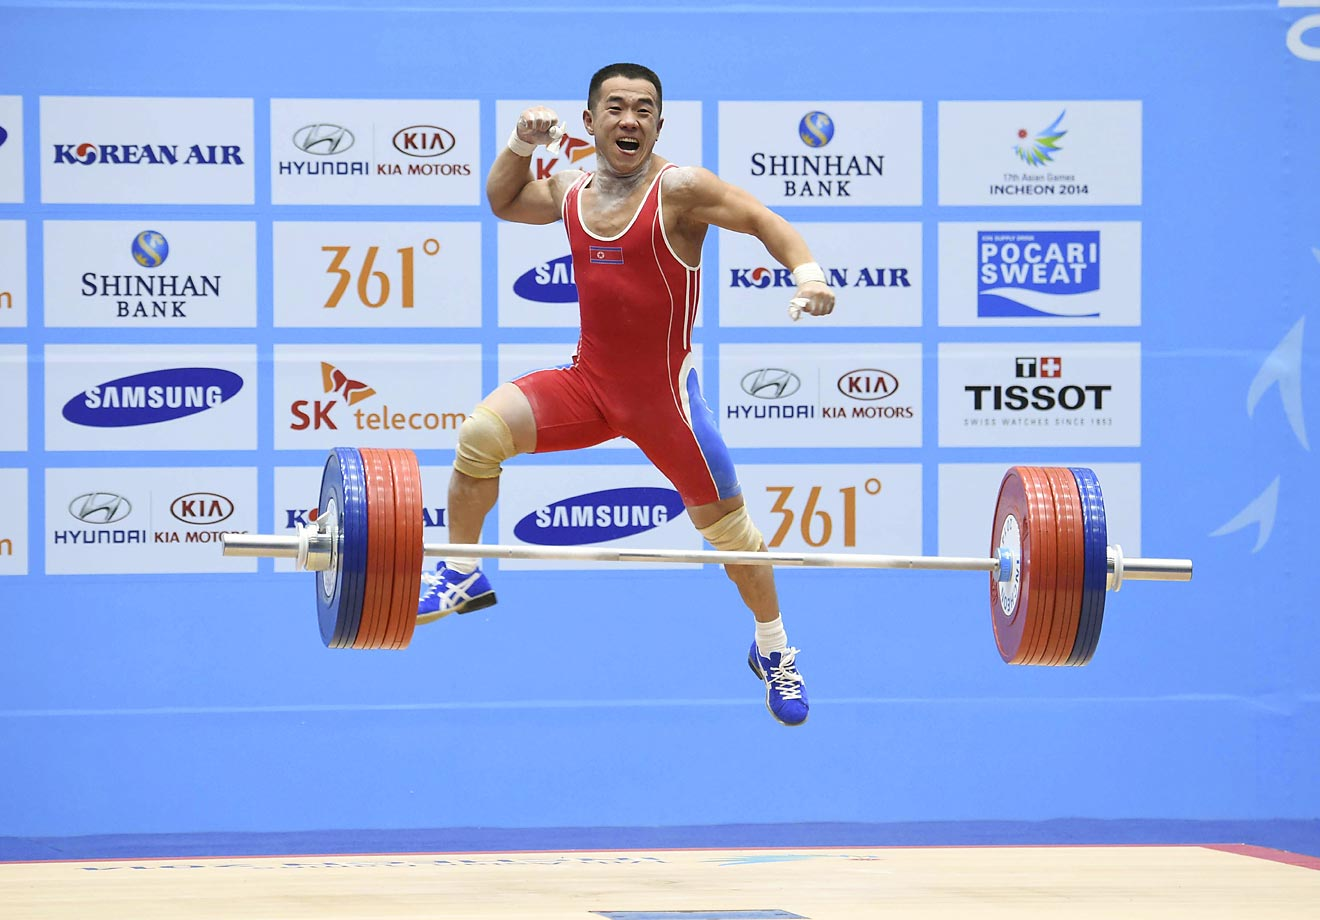 Yan Runzhe of China competes in men's 56kg weightlifting at the Asian Games.